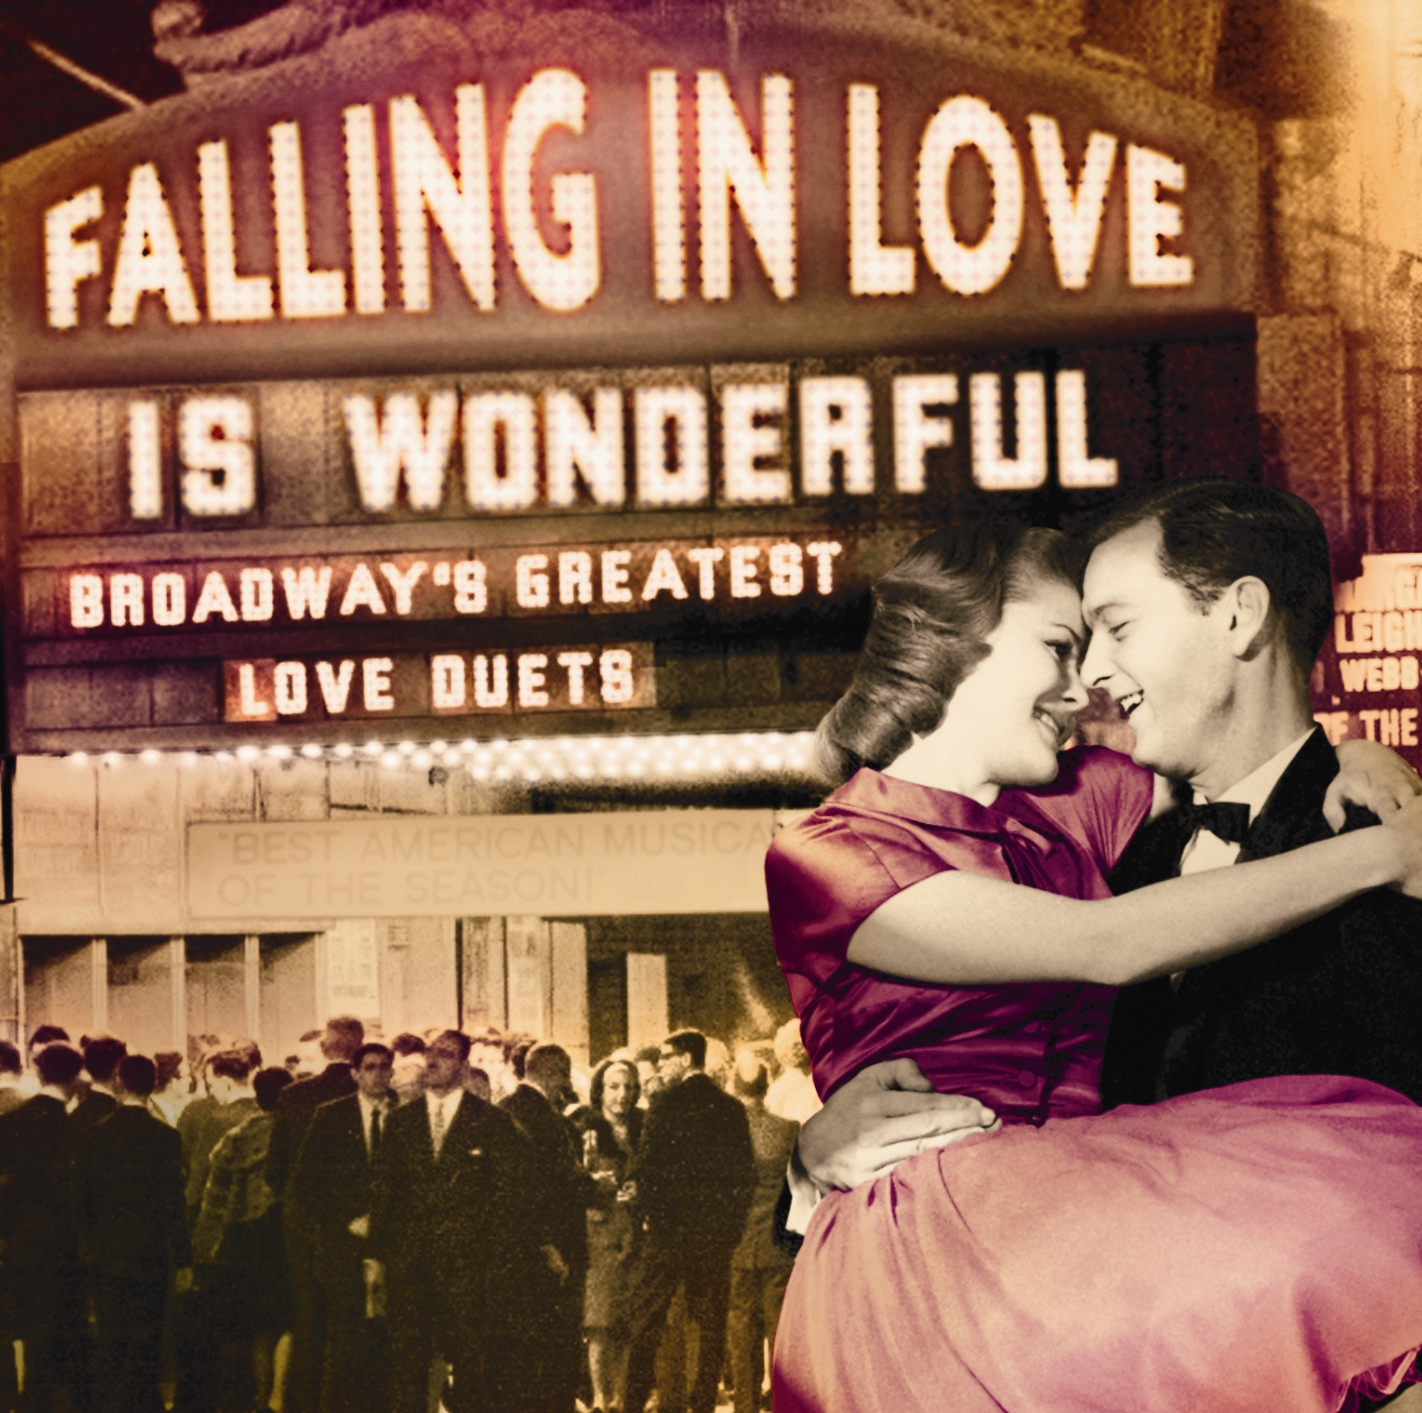 Falling in Love Is Wonderful: Broadway's Greatest Love Duets